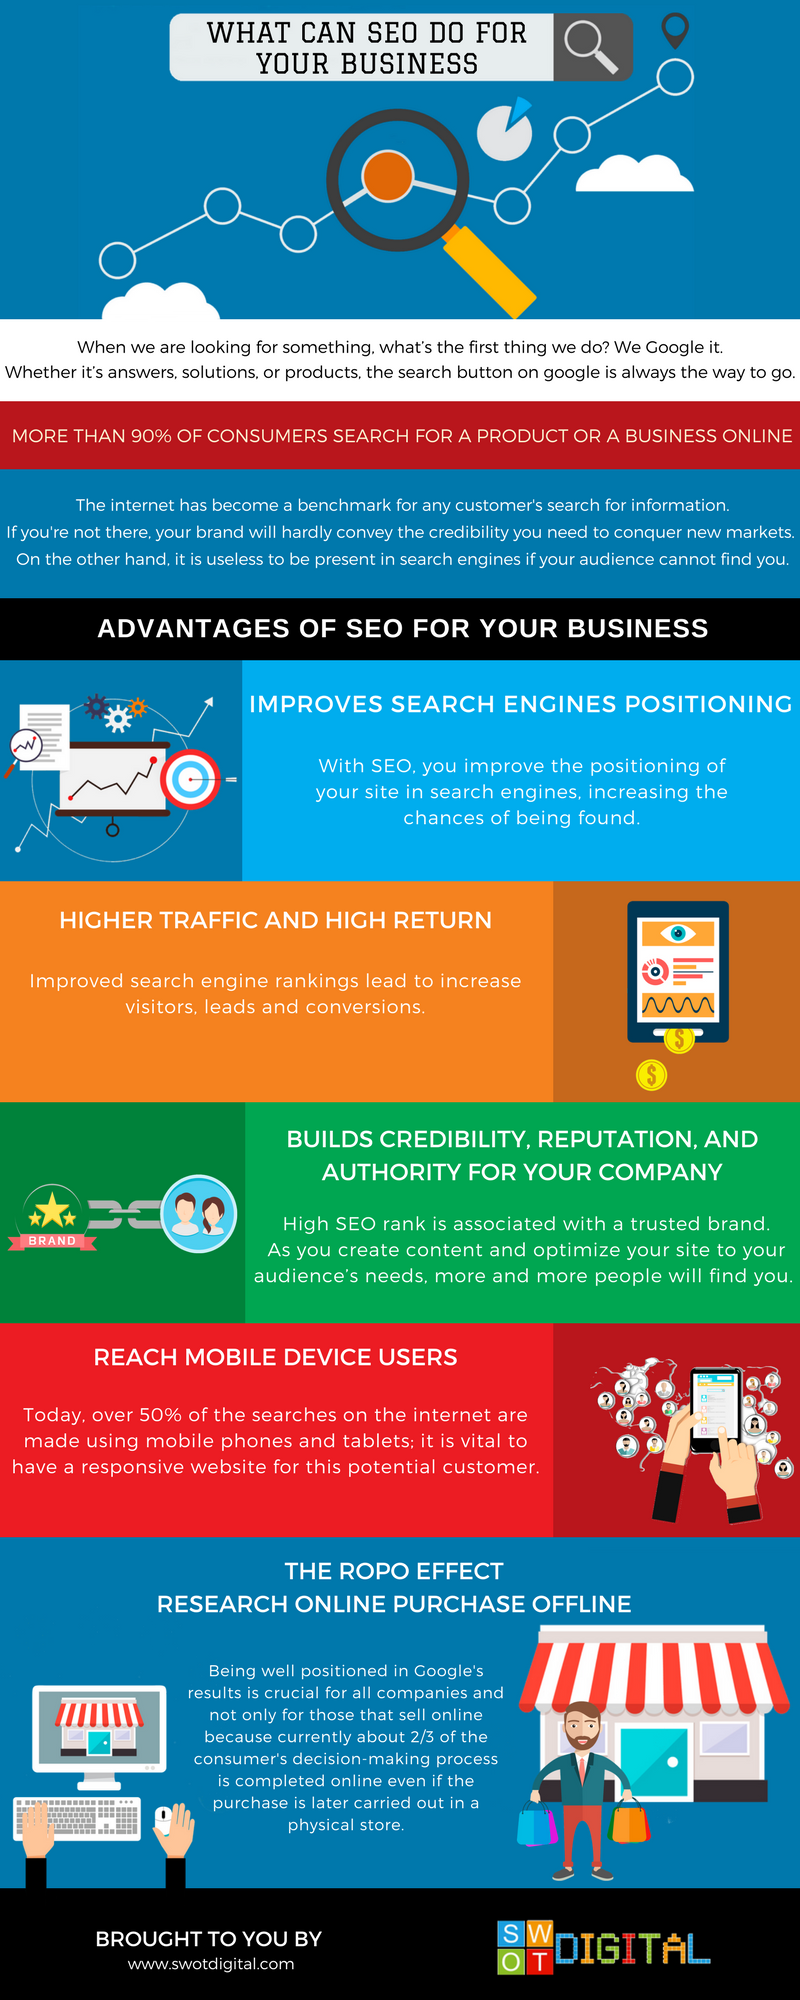 what can seo do for your business infographic